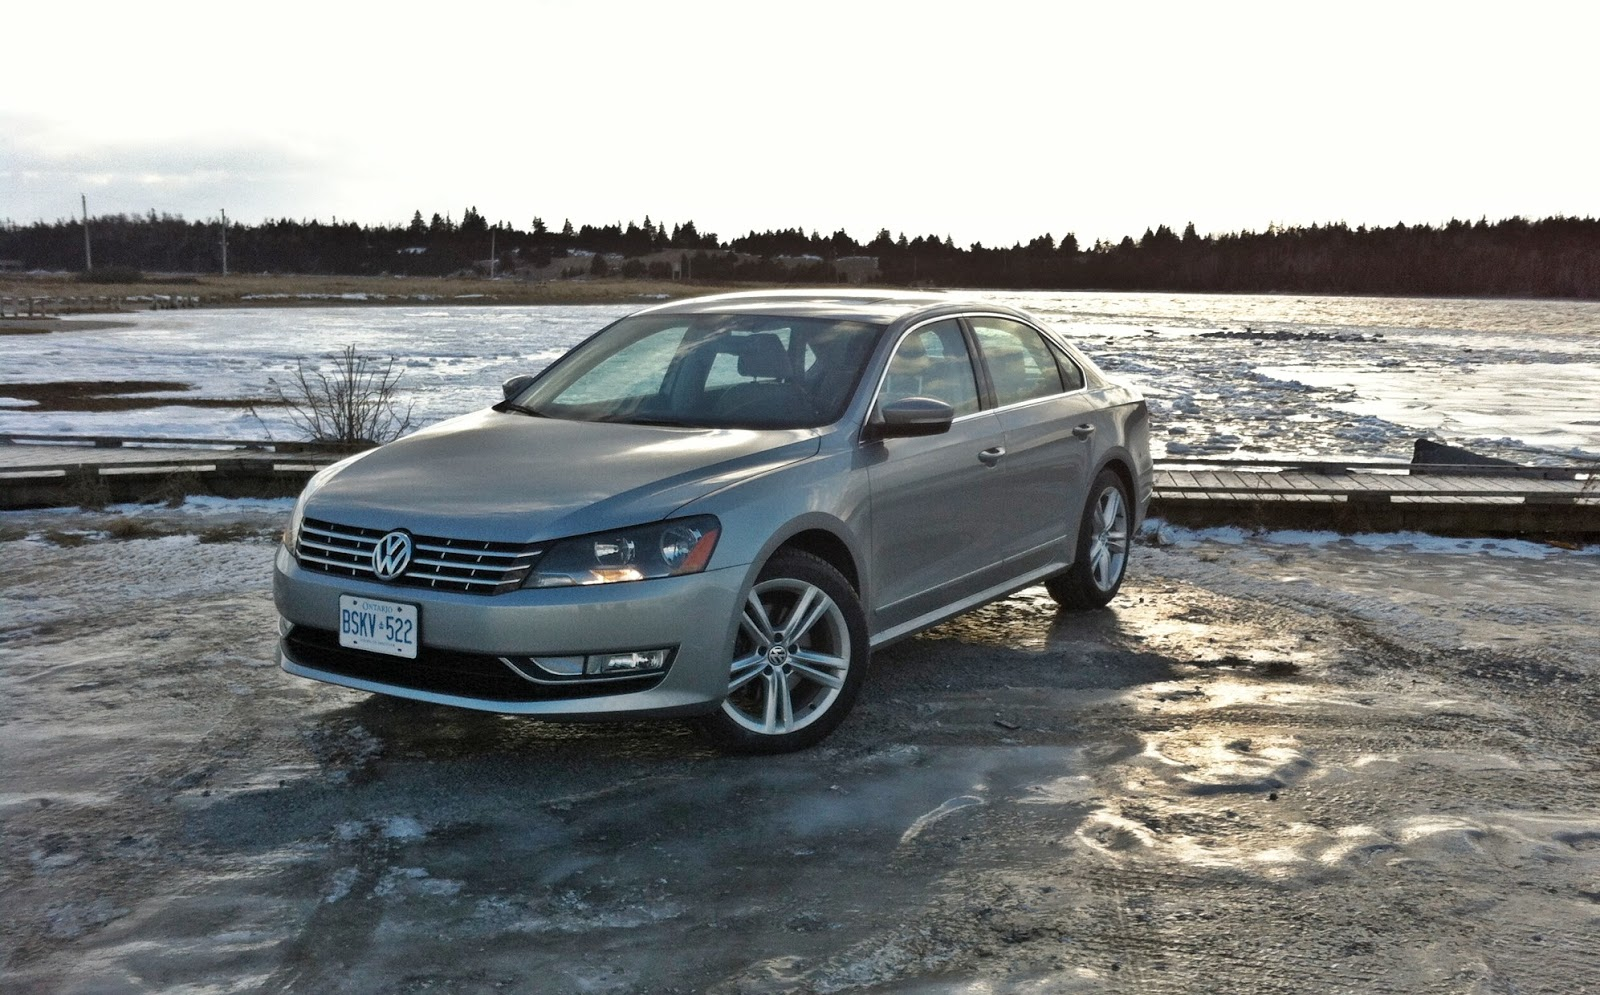 2014 Volkswagen Passat Tdi Highline Review A Very Big Car With A Very Small Fuel Bill Gcbc